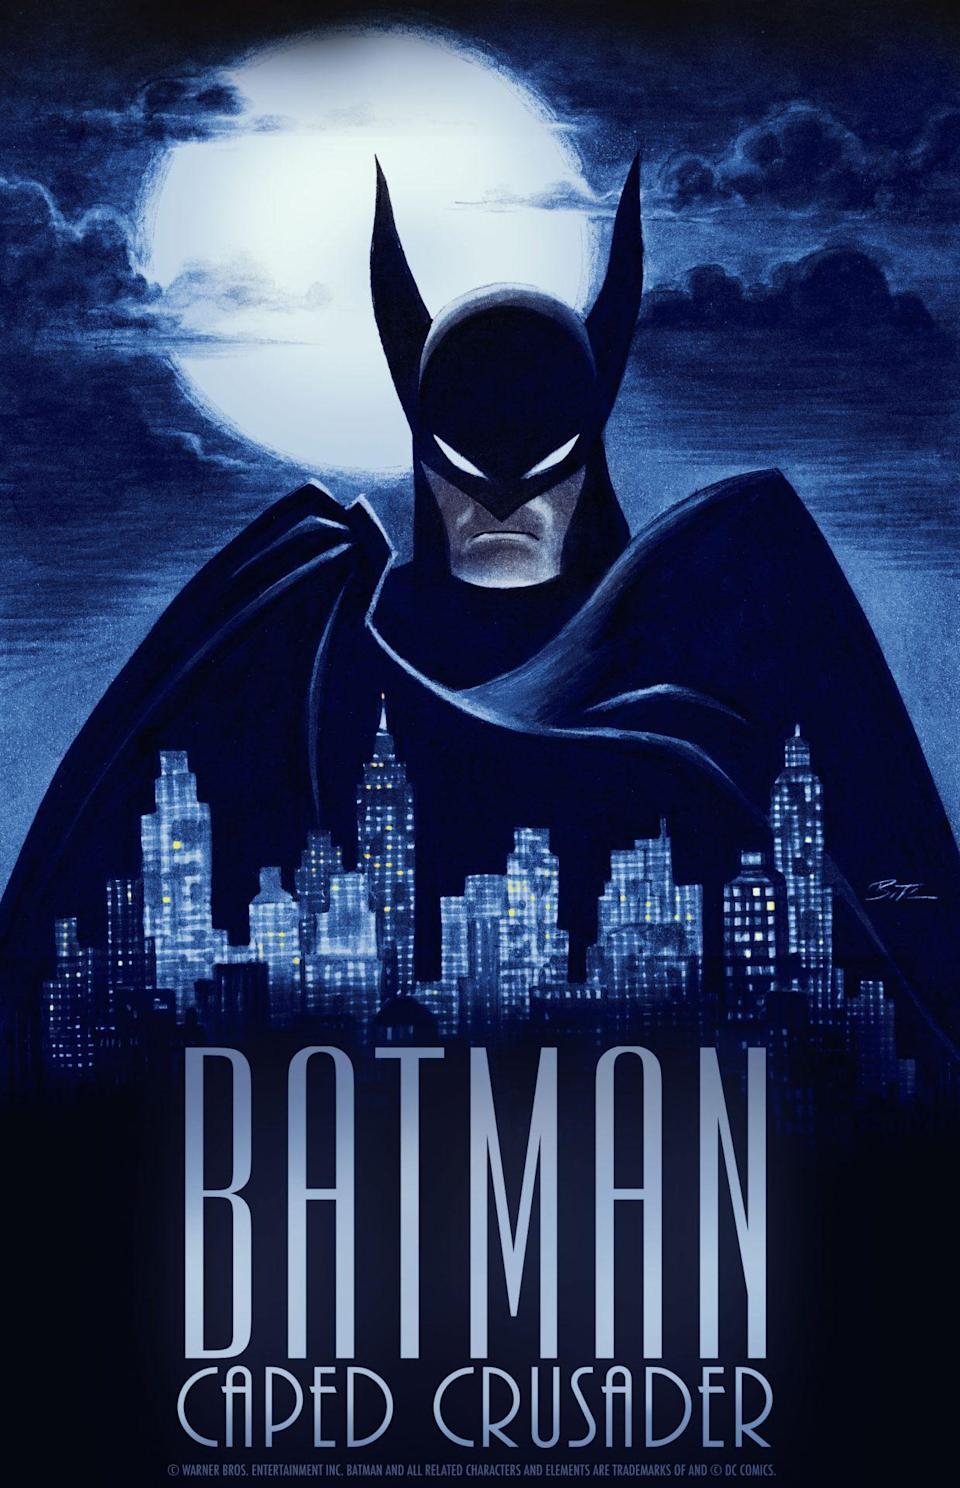 Batman: Caped Crusader looks to retain the neo-noir elements of Bruce Timm's classic Batman: The Animated Series.